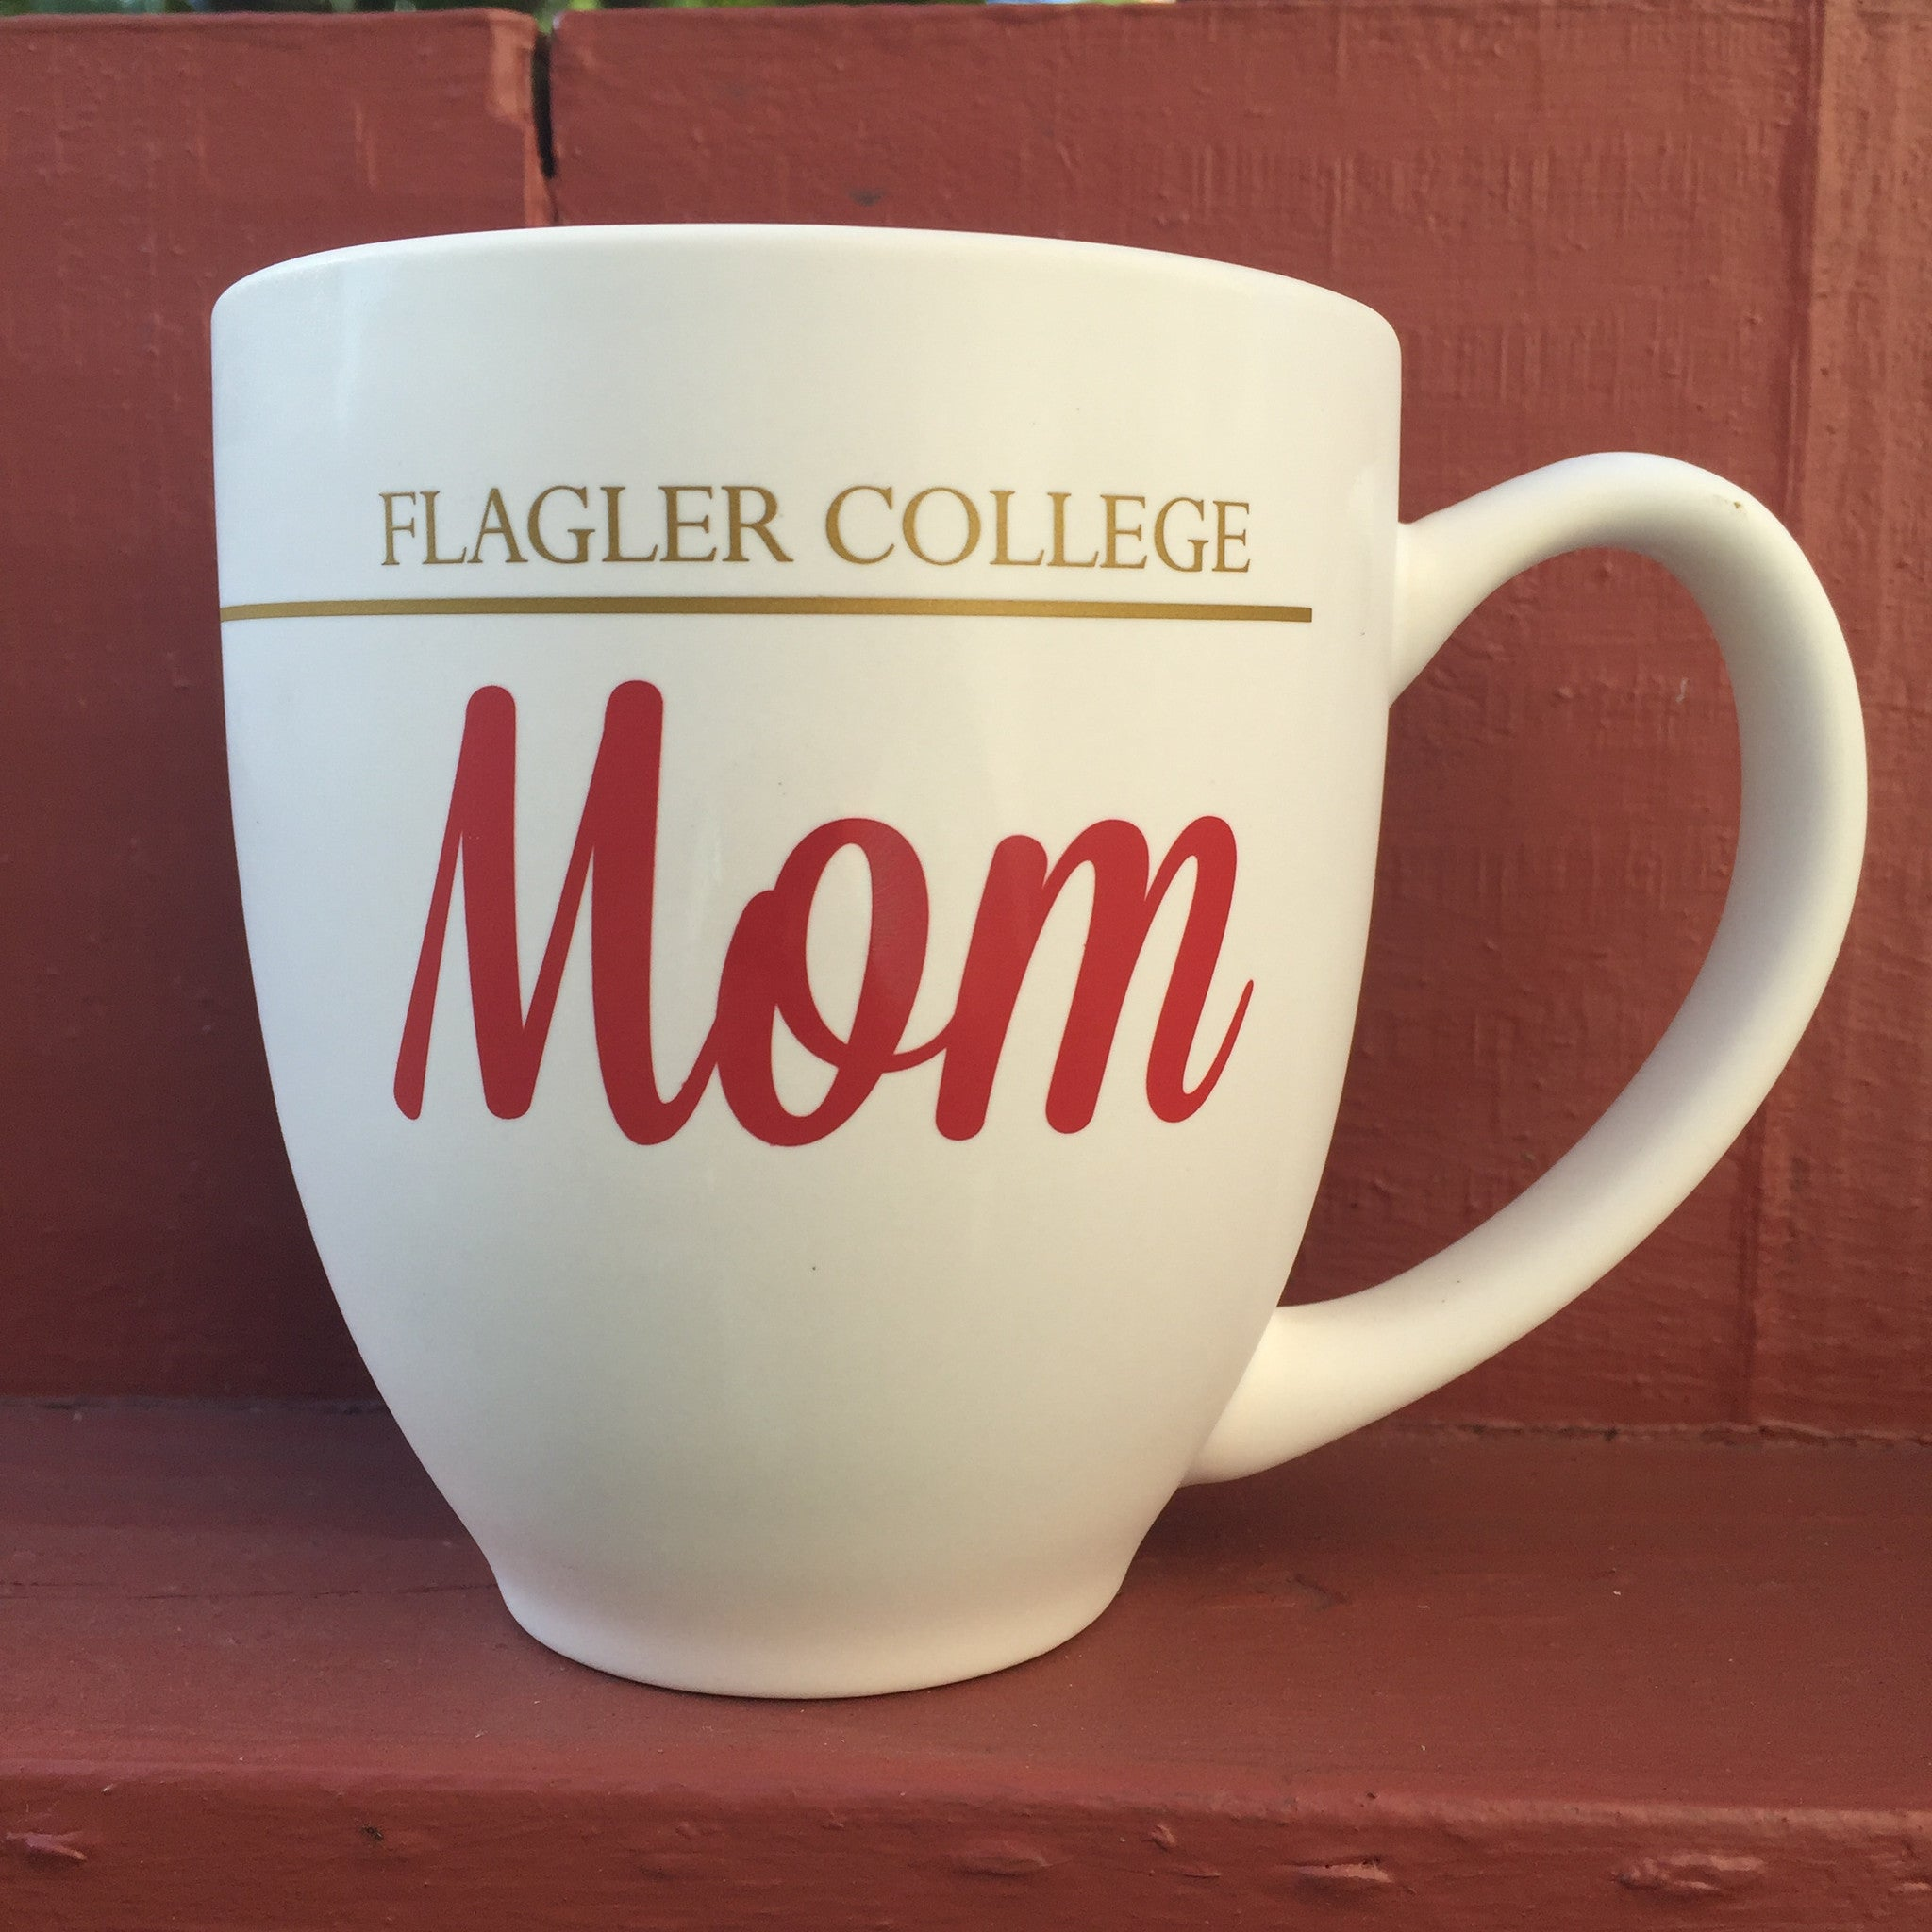 12 oz white mug with Flagler college printed in gold and mom printed in red